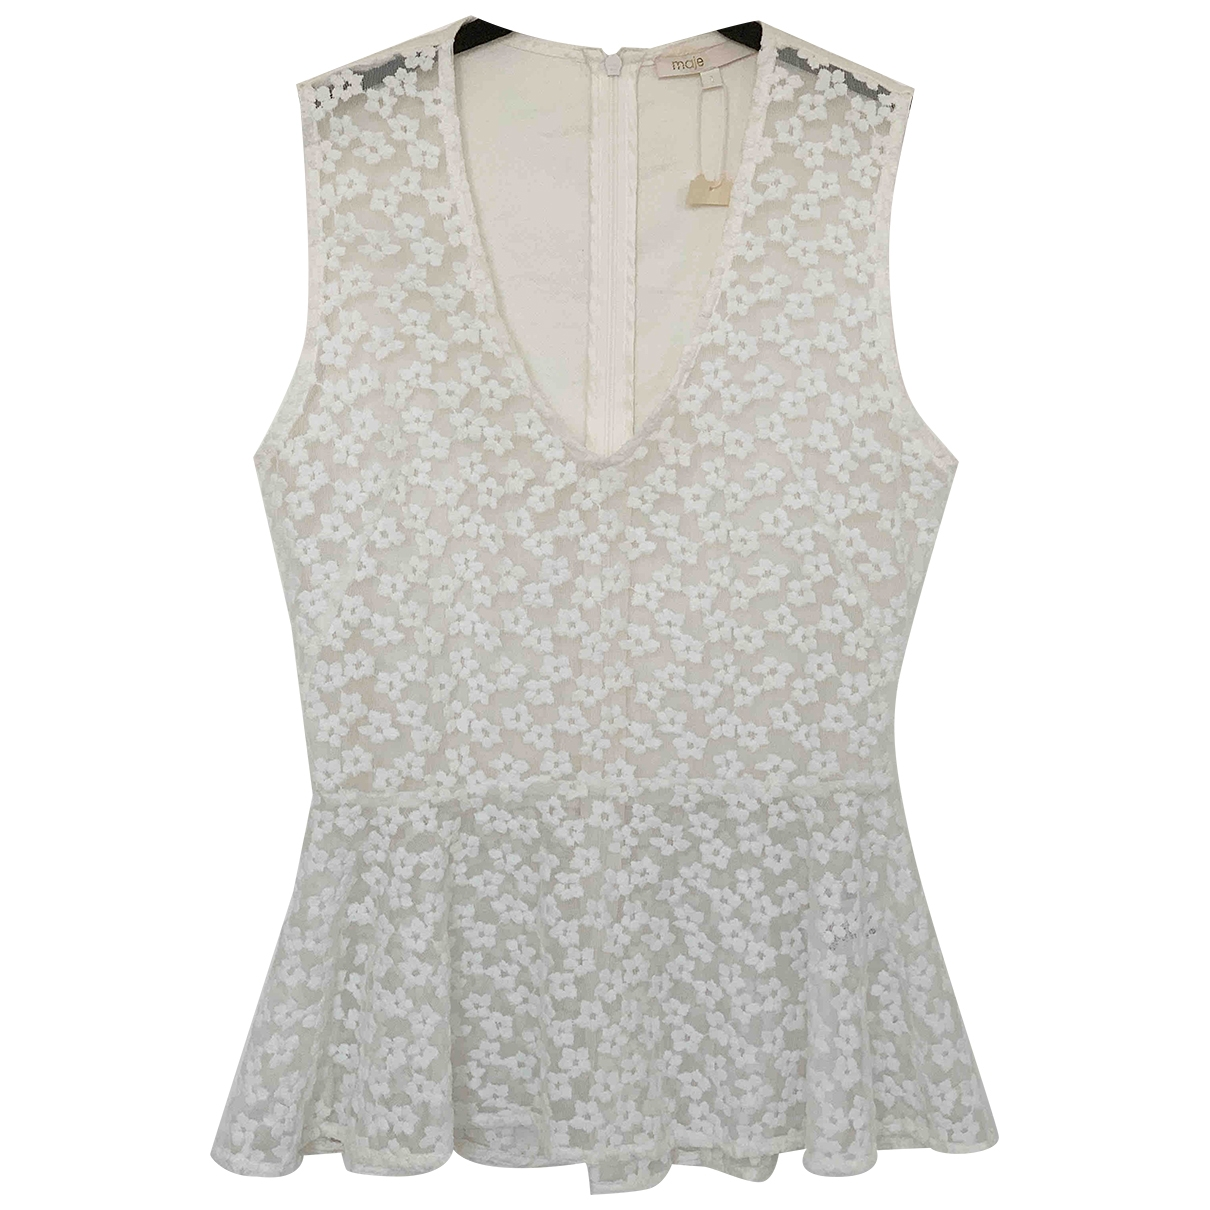 Maje \N White Lace  top for Women 34 FR